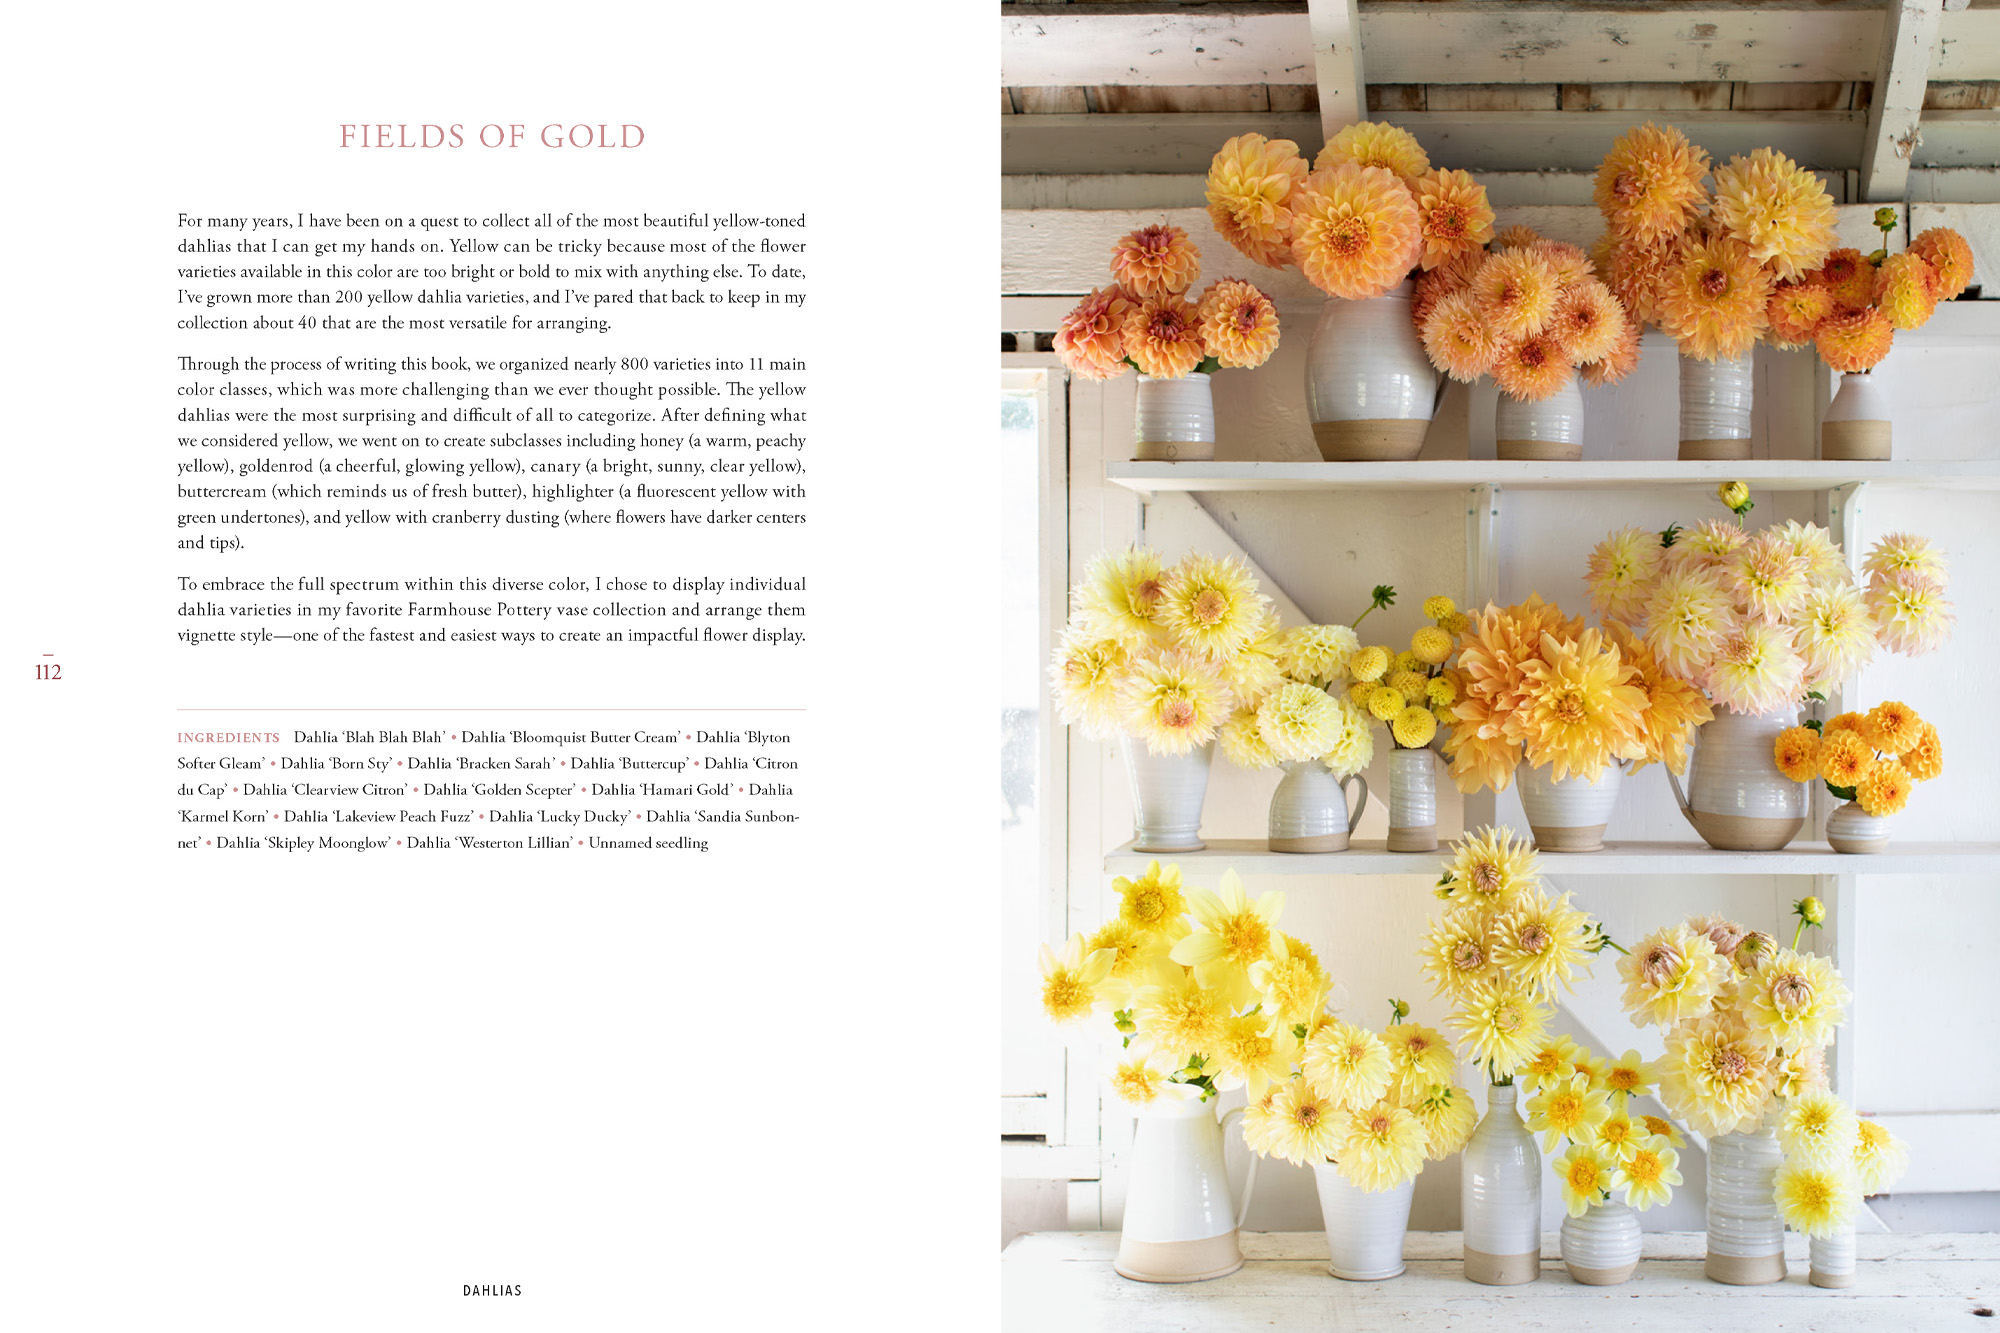 A page from Floret Farm's Discovering Dahlias